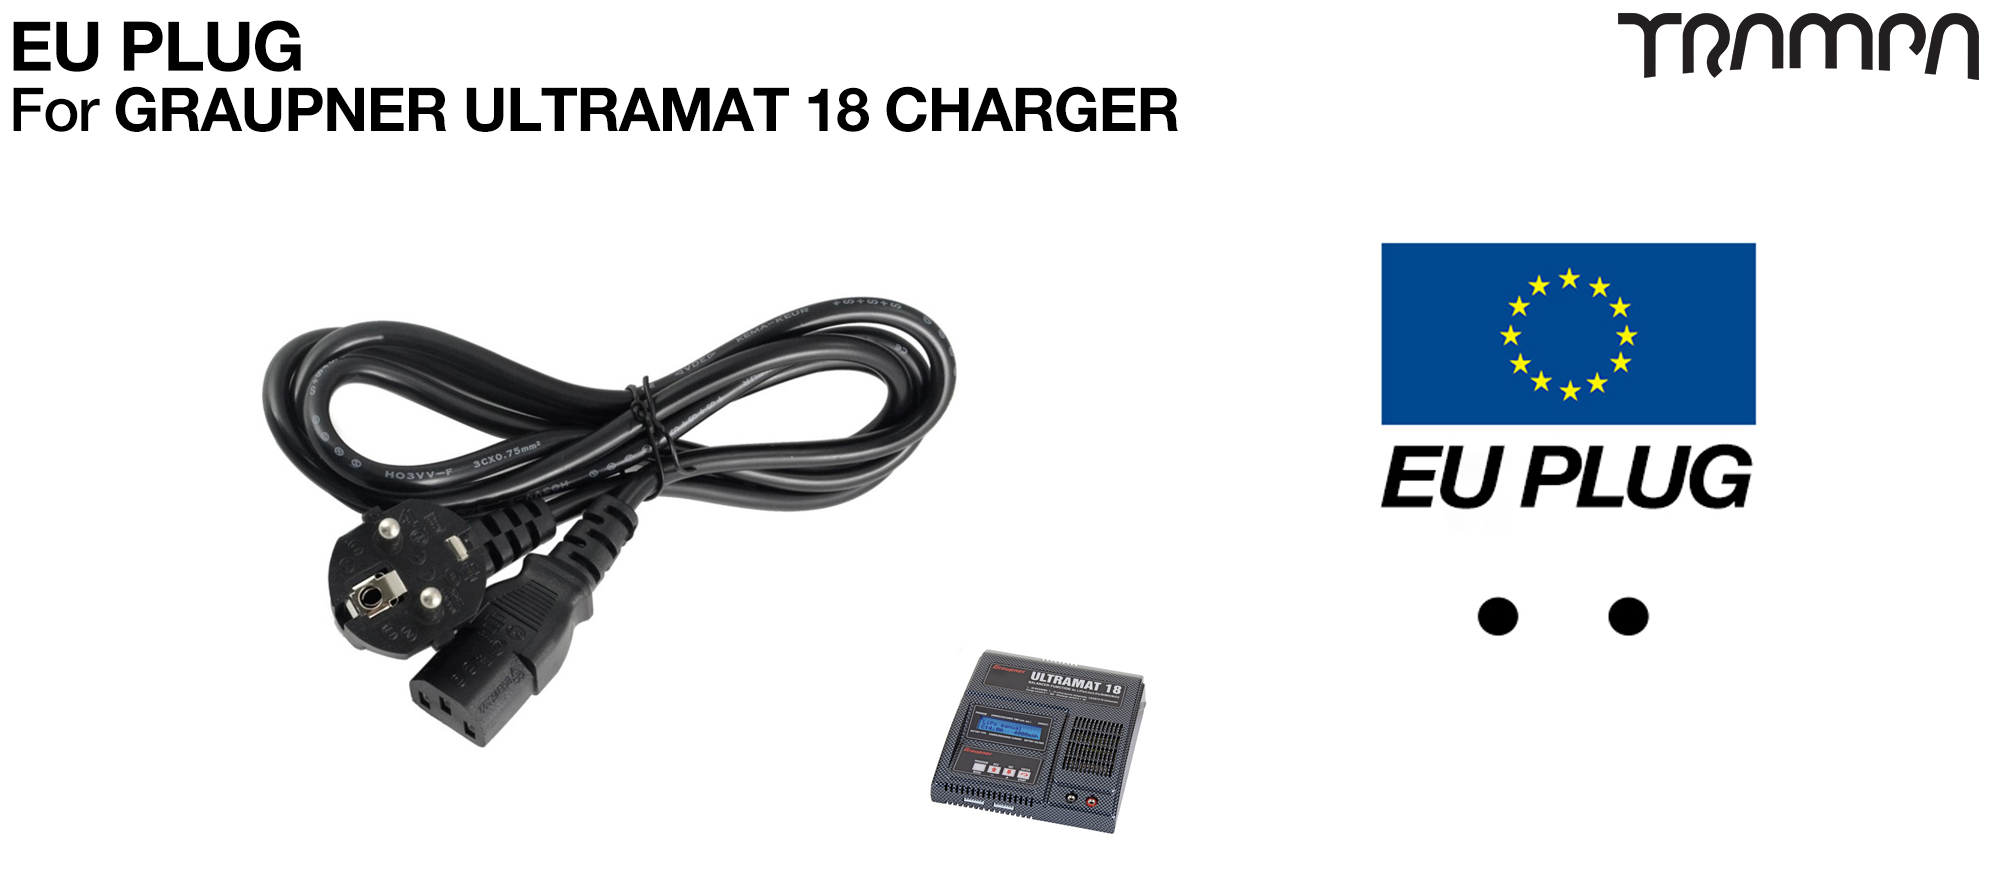 Please supply me with a EURO Plug with the Graupner Charger